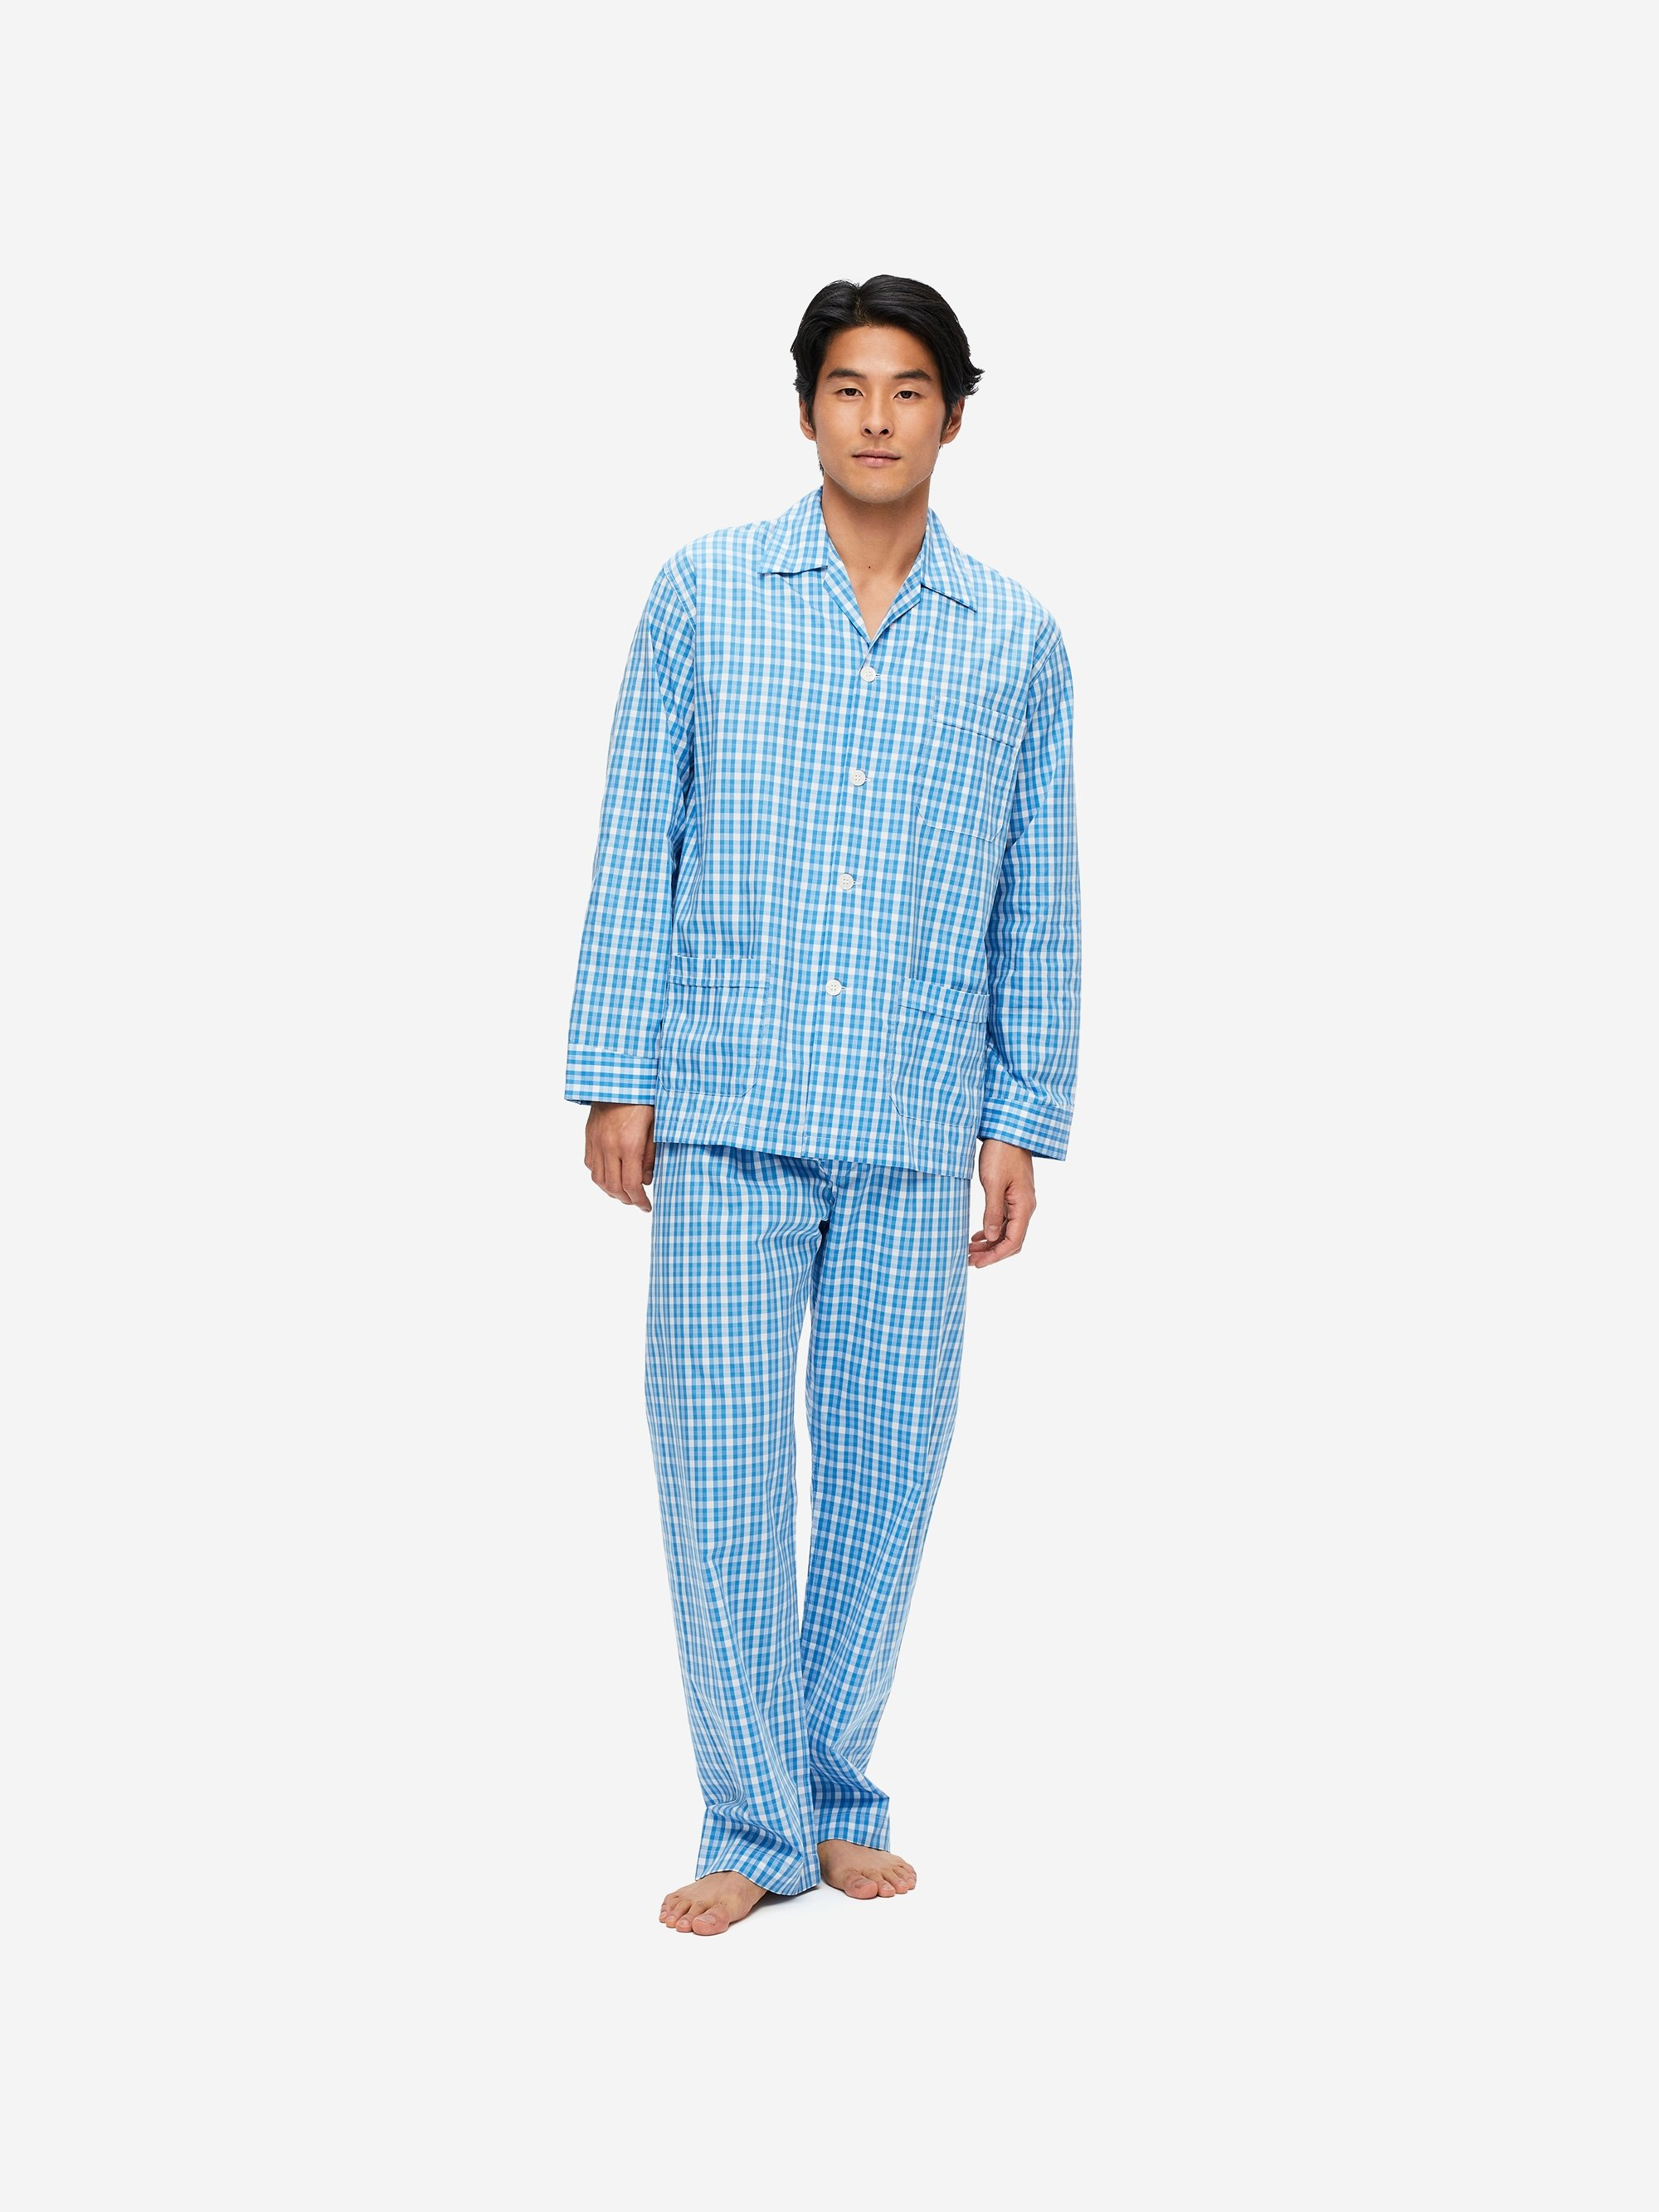 Men's Classic Fit Pyjamas Barker 29 Cotton Check Blue